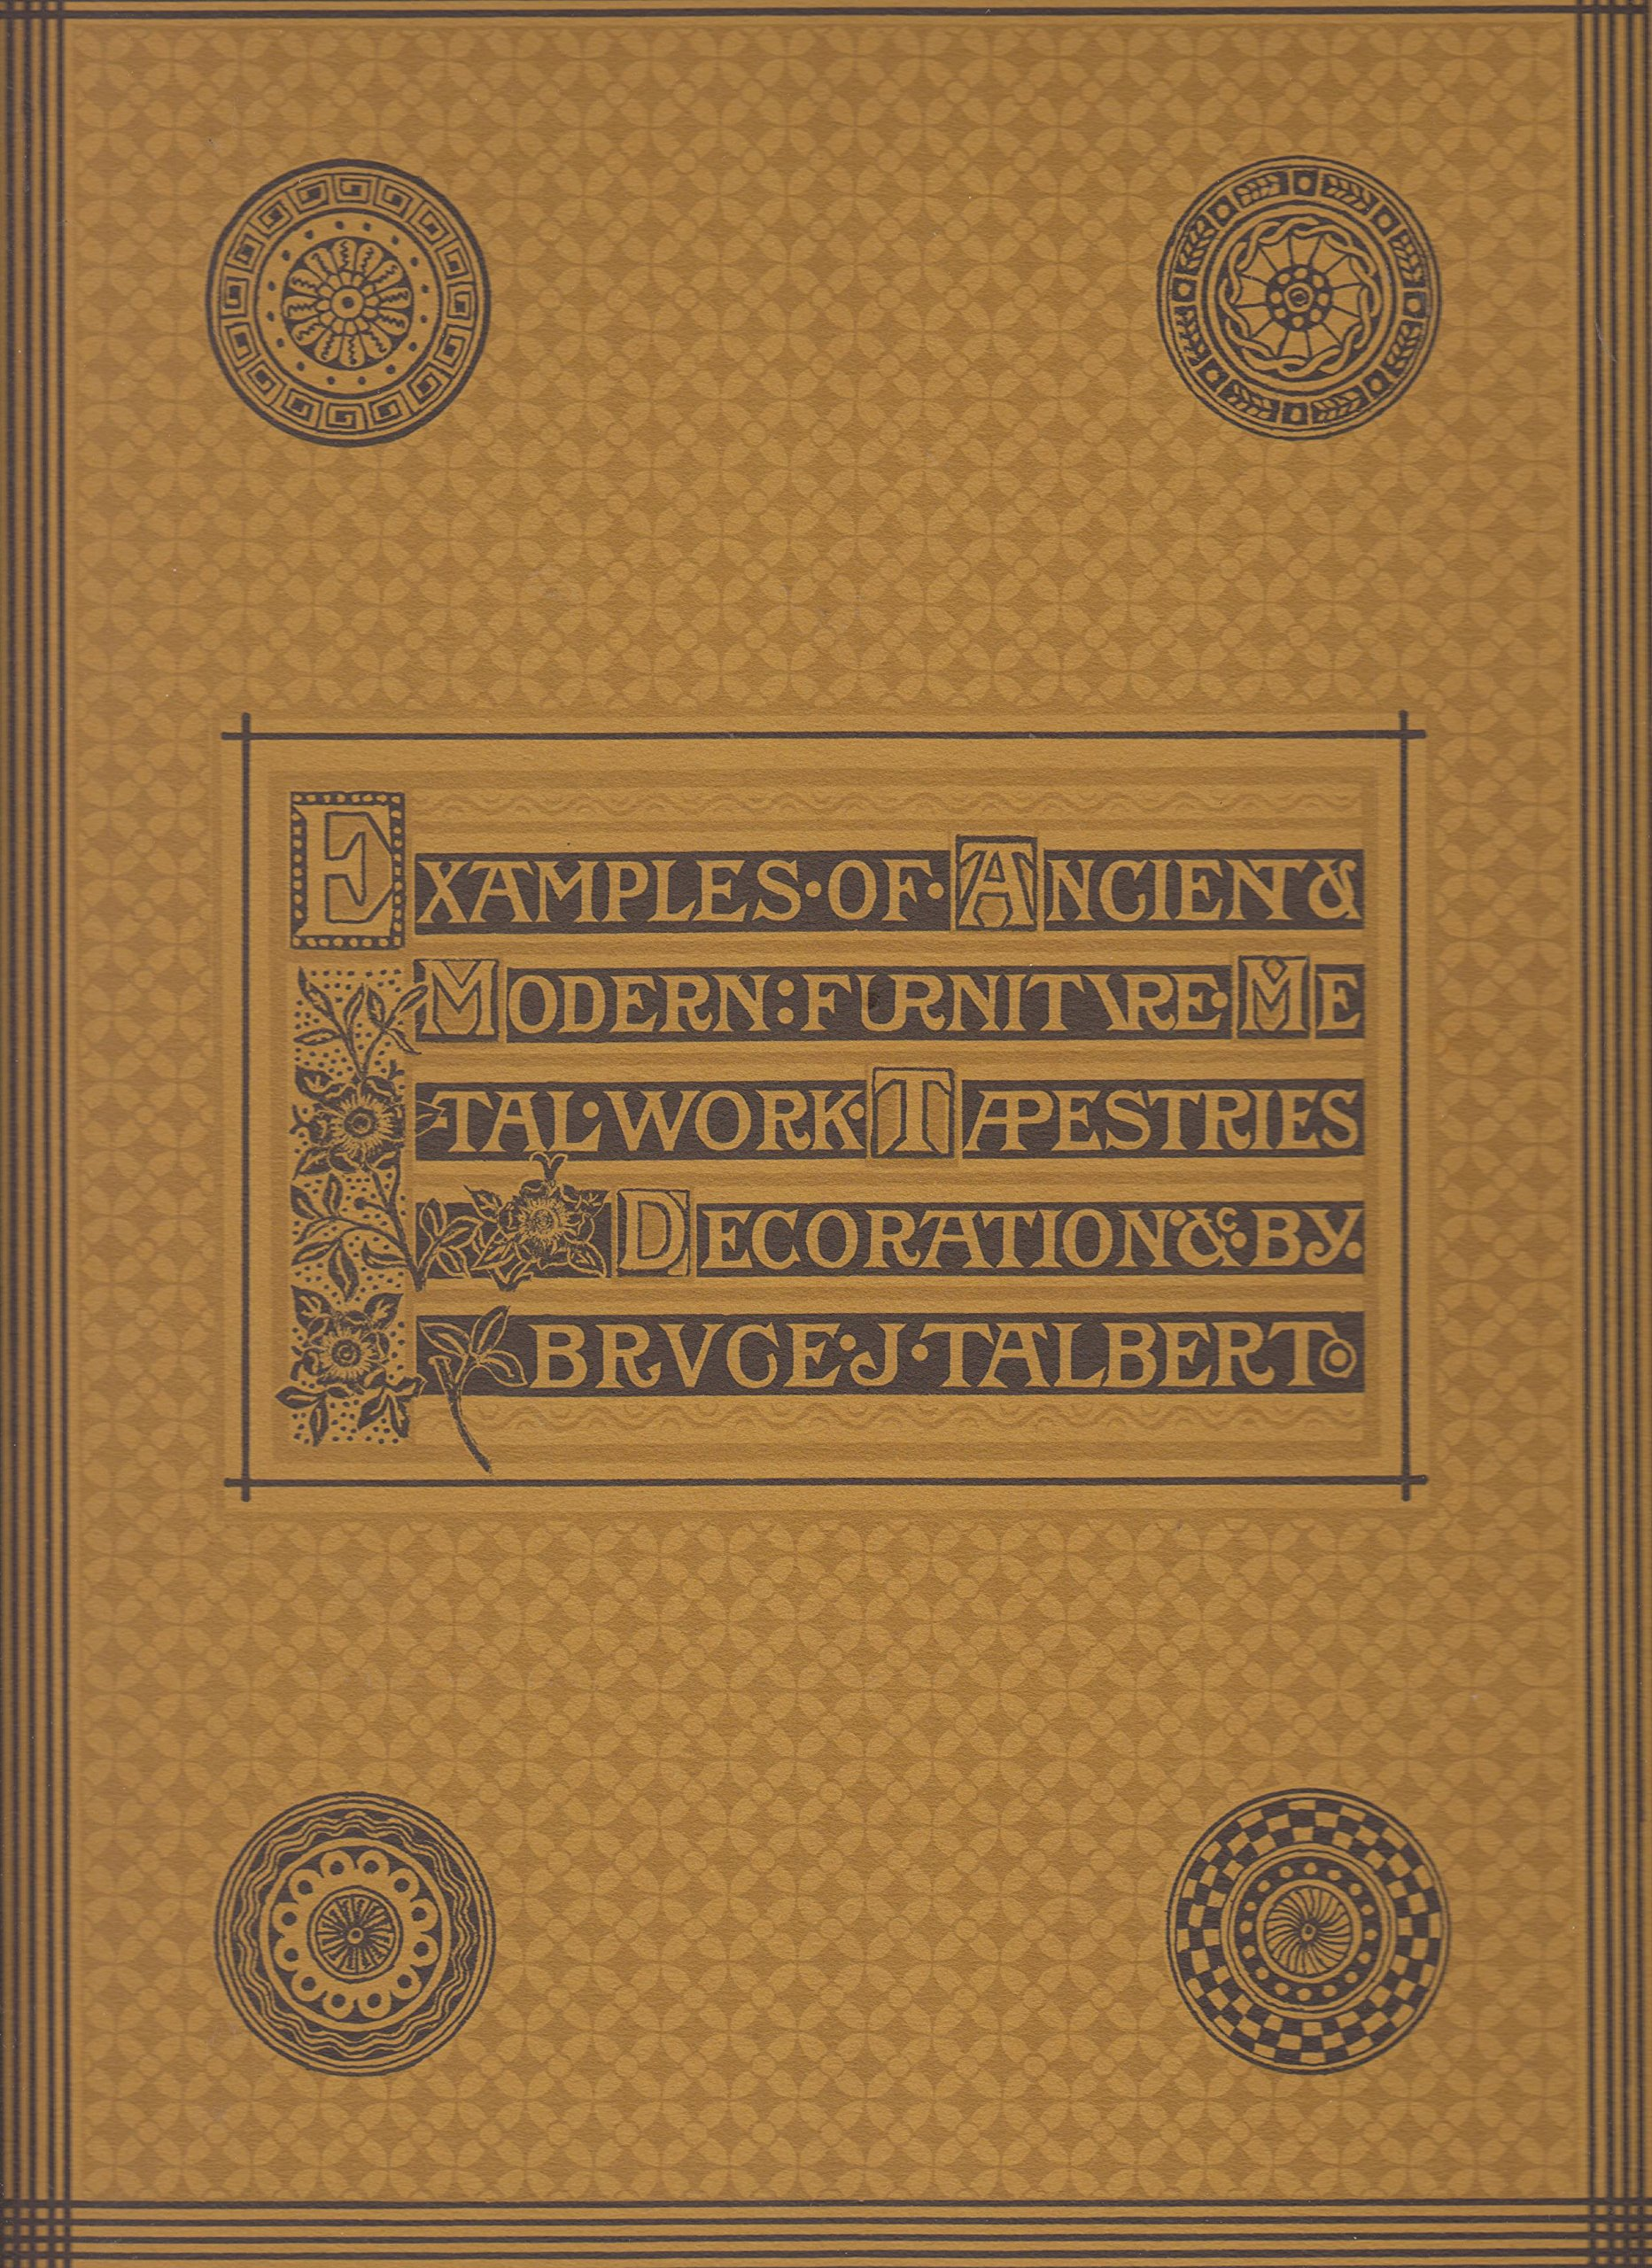 Victorian decorative arts examples of ancient modern furniture metalwork tapestries paperback 1978